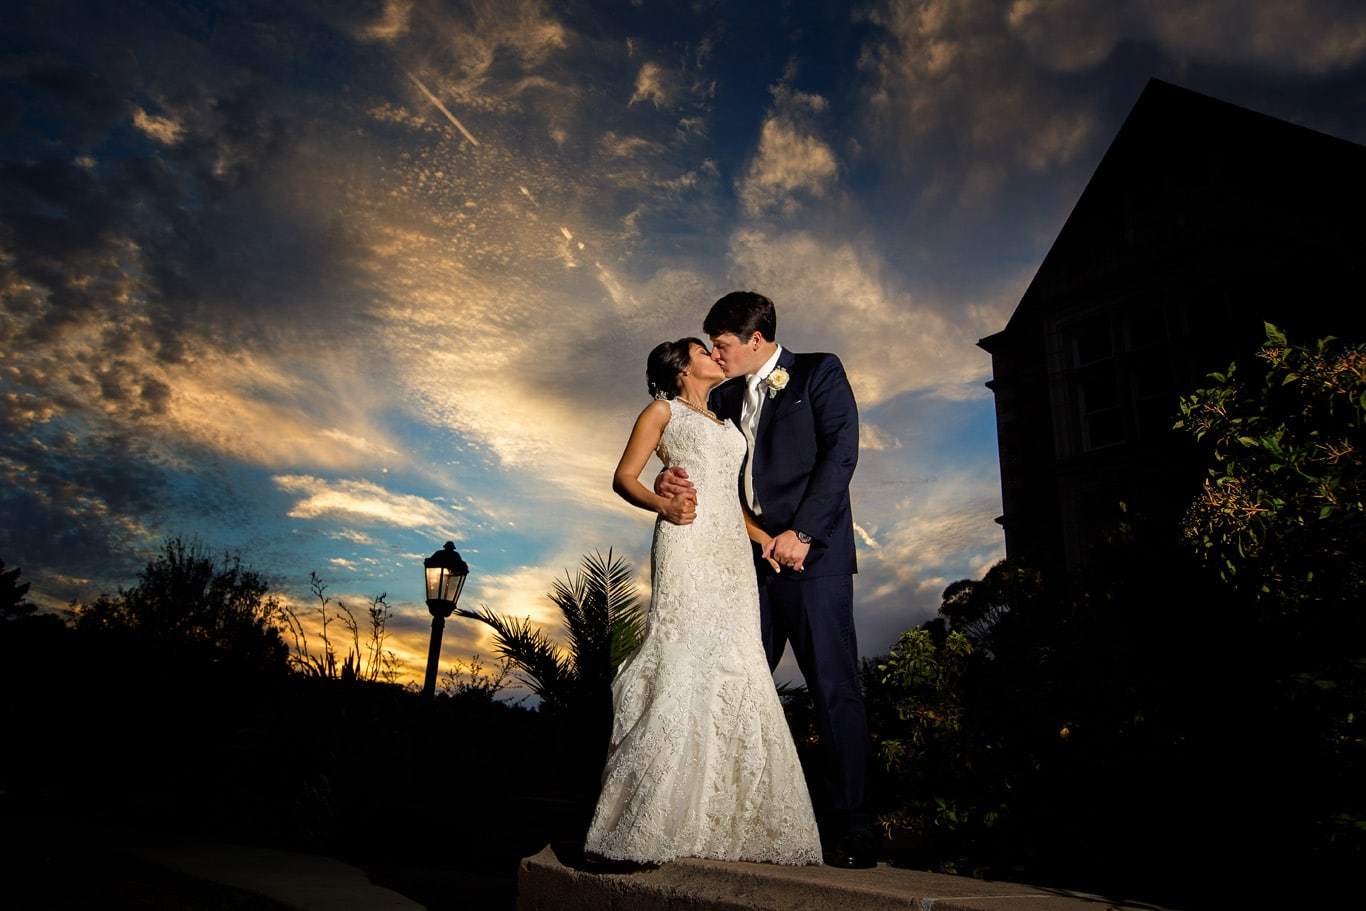 Wedding Portrait at Dusk at Kohl Mansion Wedding